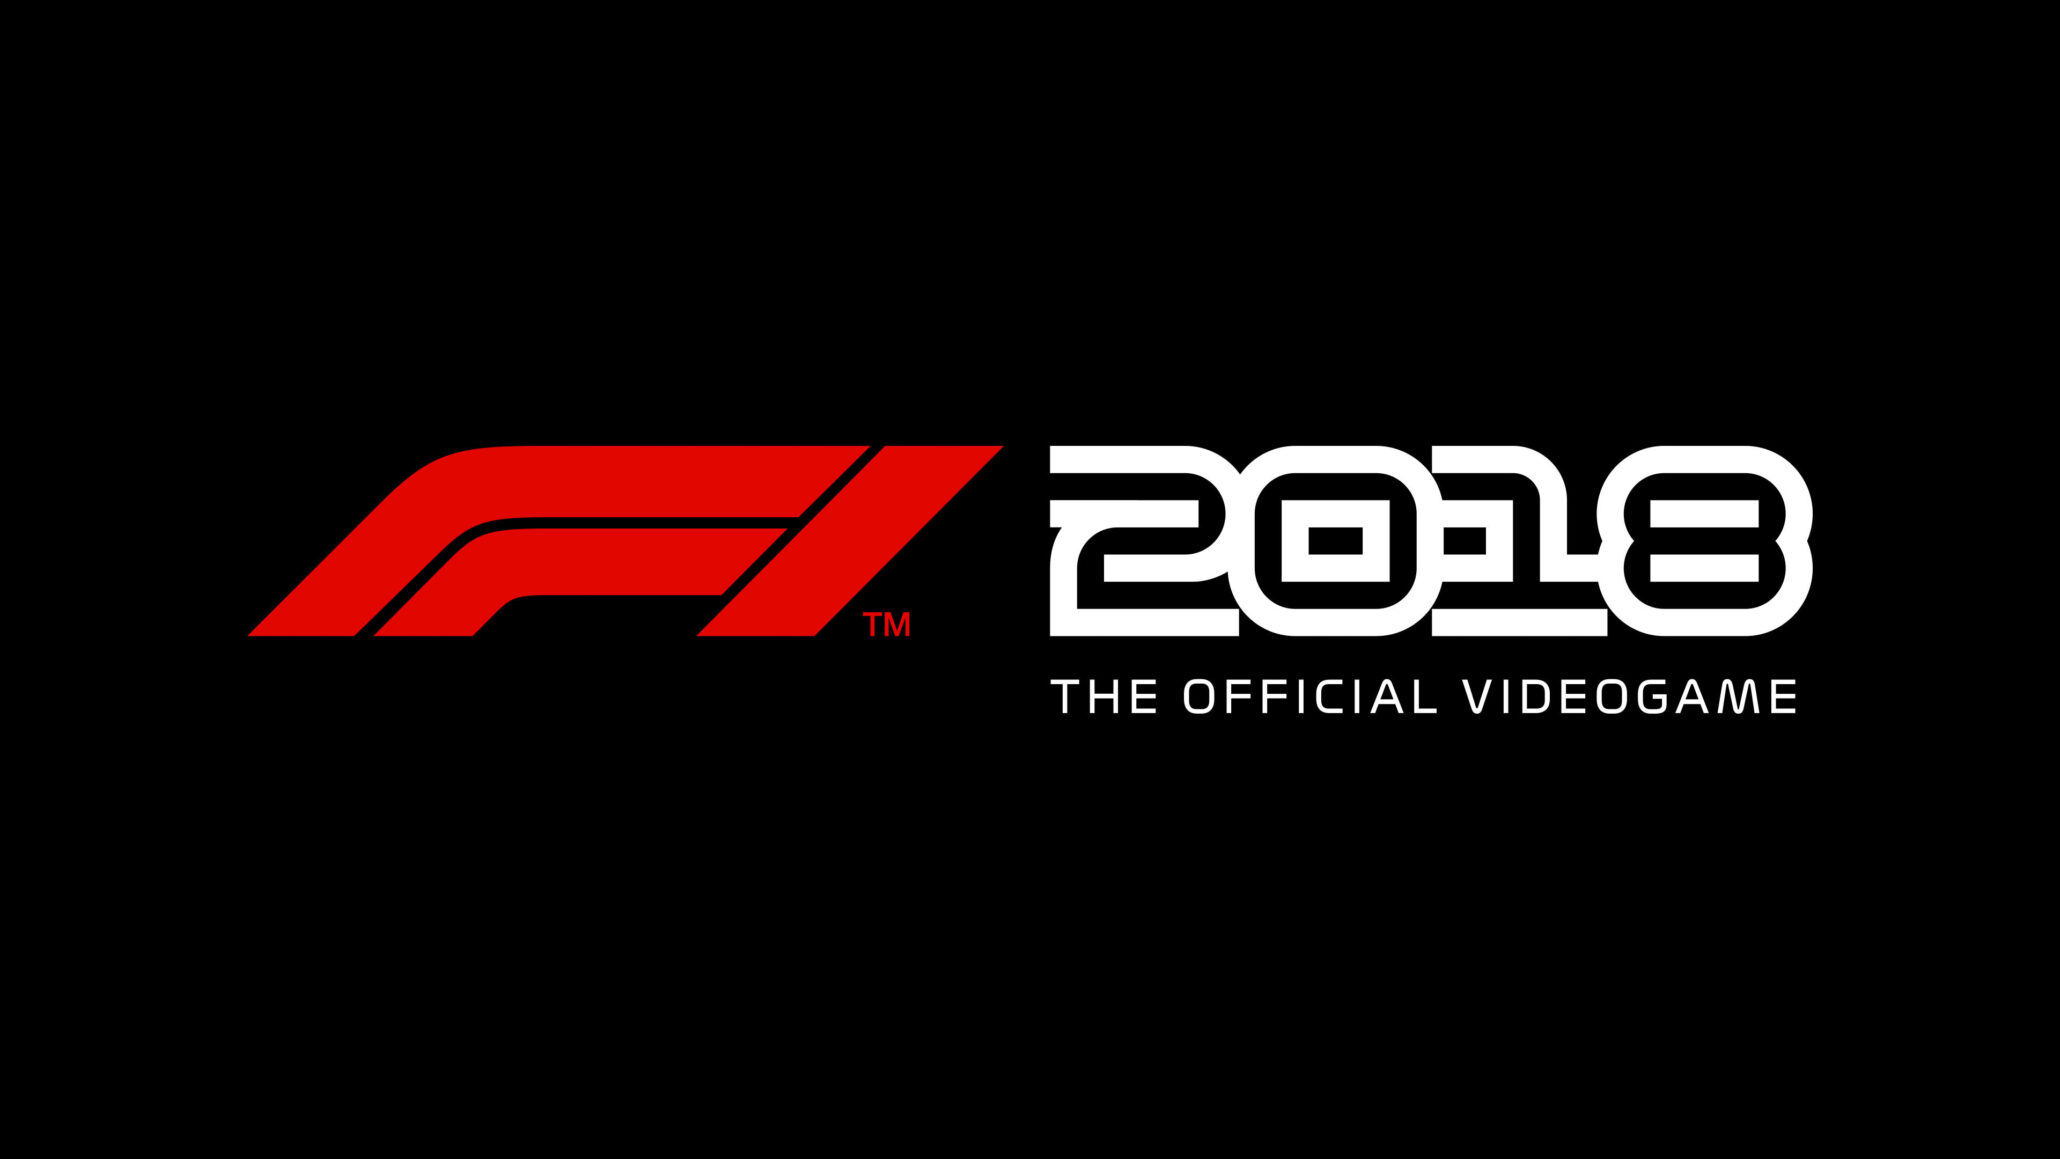 f1 2018 releases on august 24th for pc ps4 xbox offers greater career depth and more classic cars. Black Bedroom Furniture Sets. Home Design Ideas